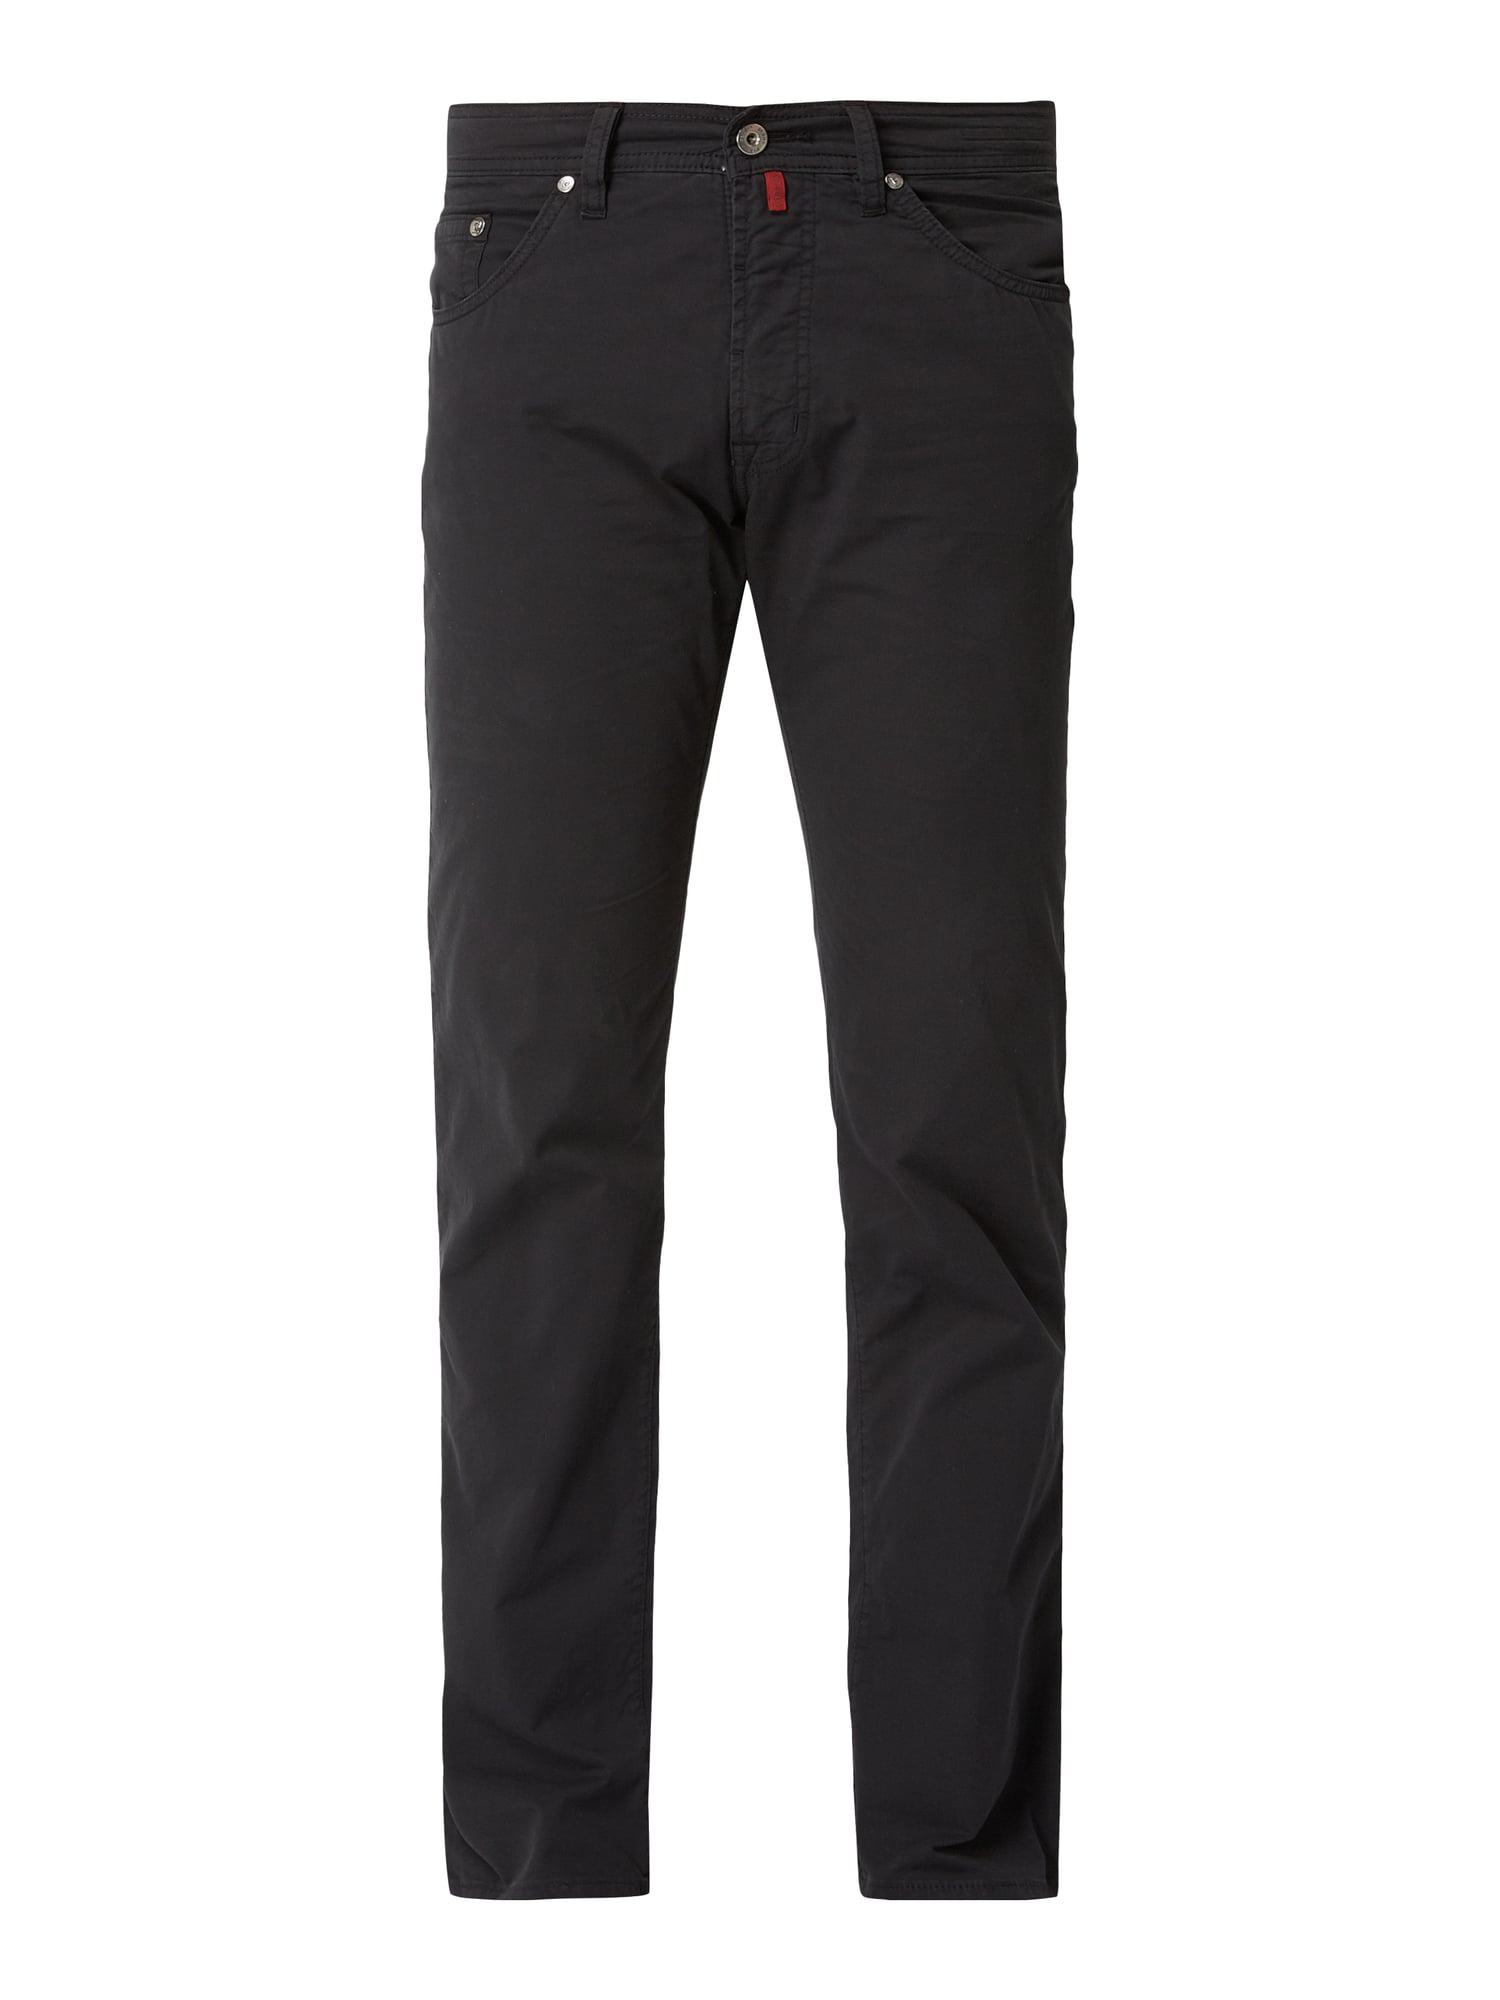 Pierre Cardin 5 Pocket Hose Mit Stretch Anteil In Grau